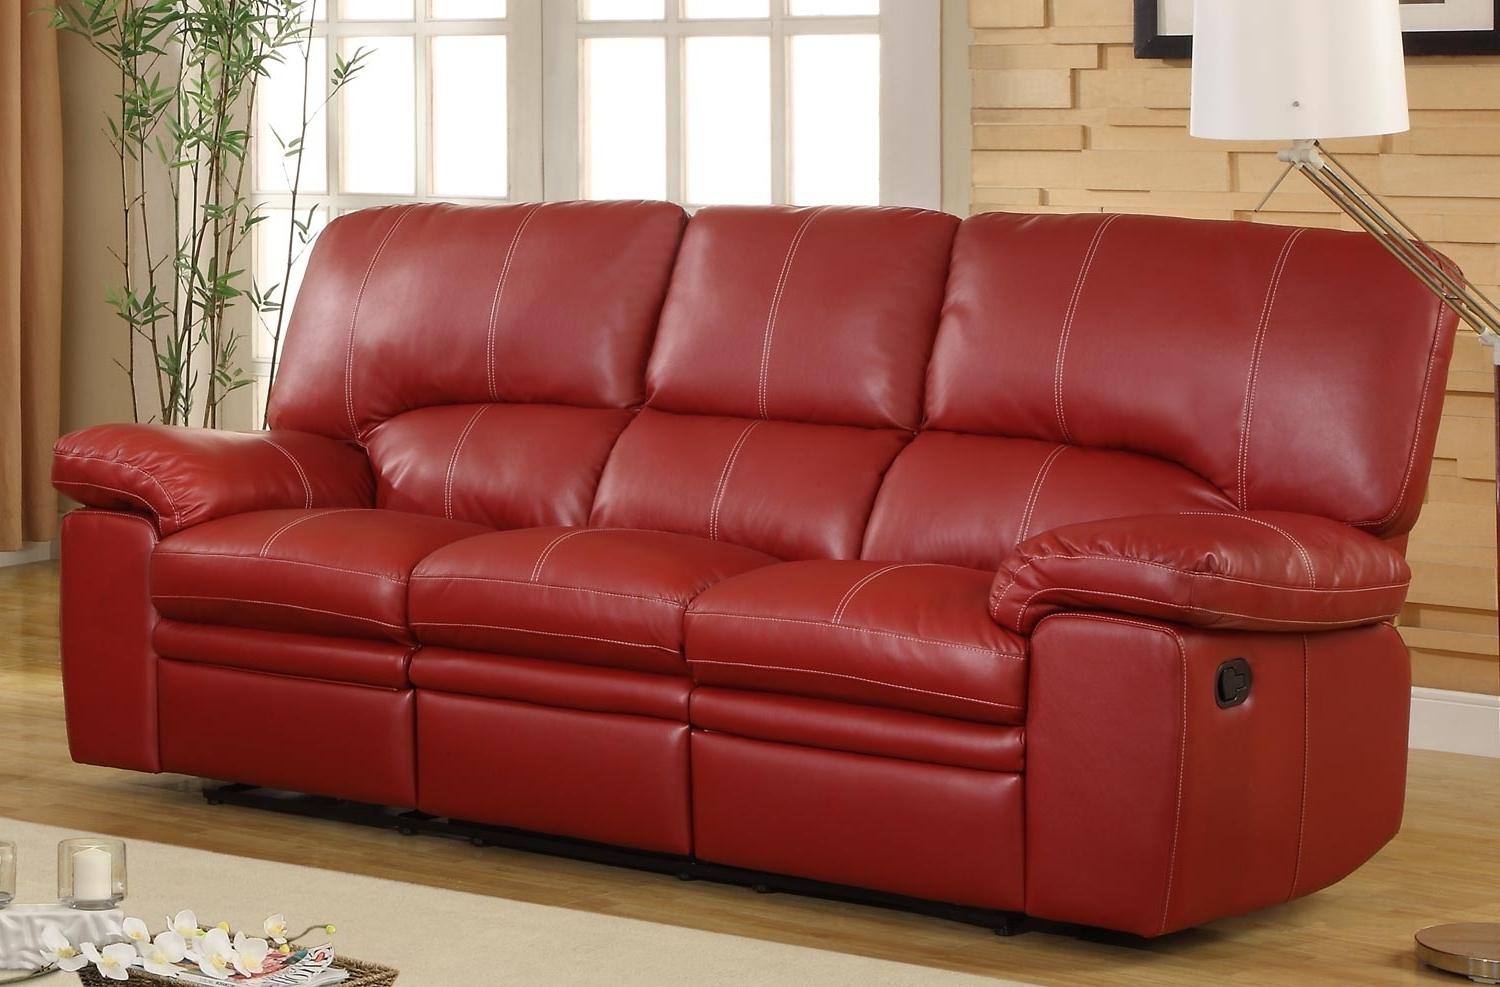 Fashionable Red Leather Reclining Sofas And Loveseats Inside Red Leather Reclining Sofa – Visionexchange (View 4 of 15)